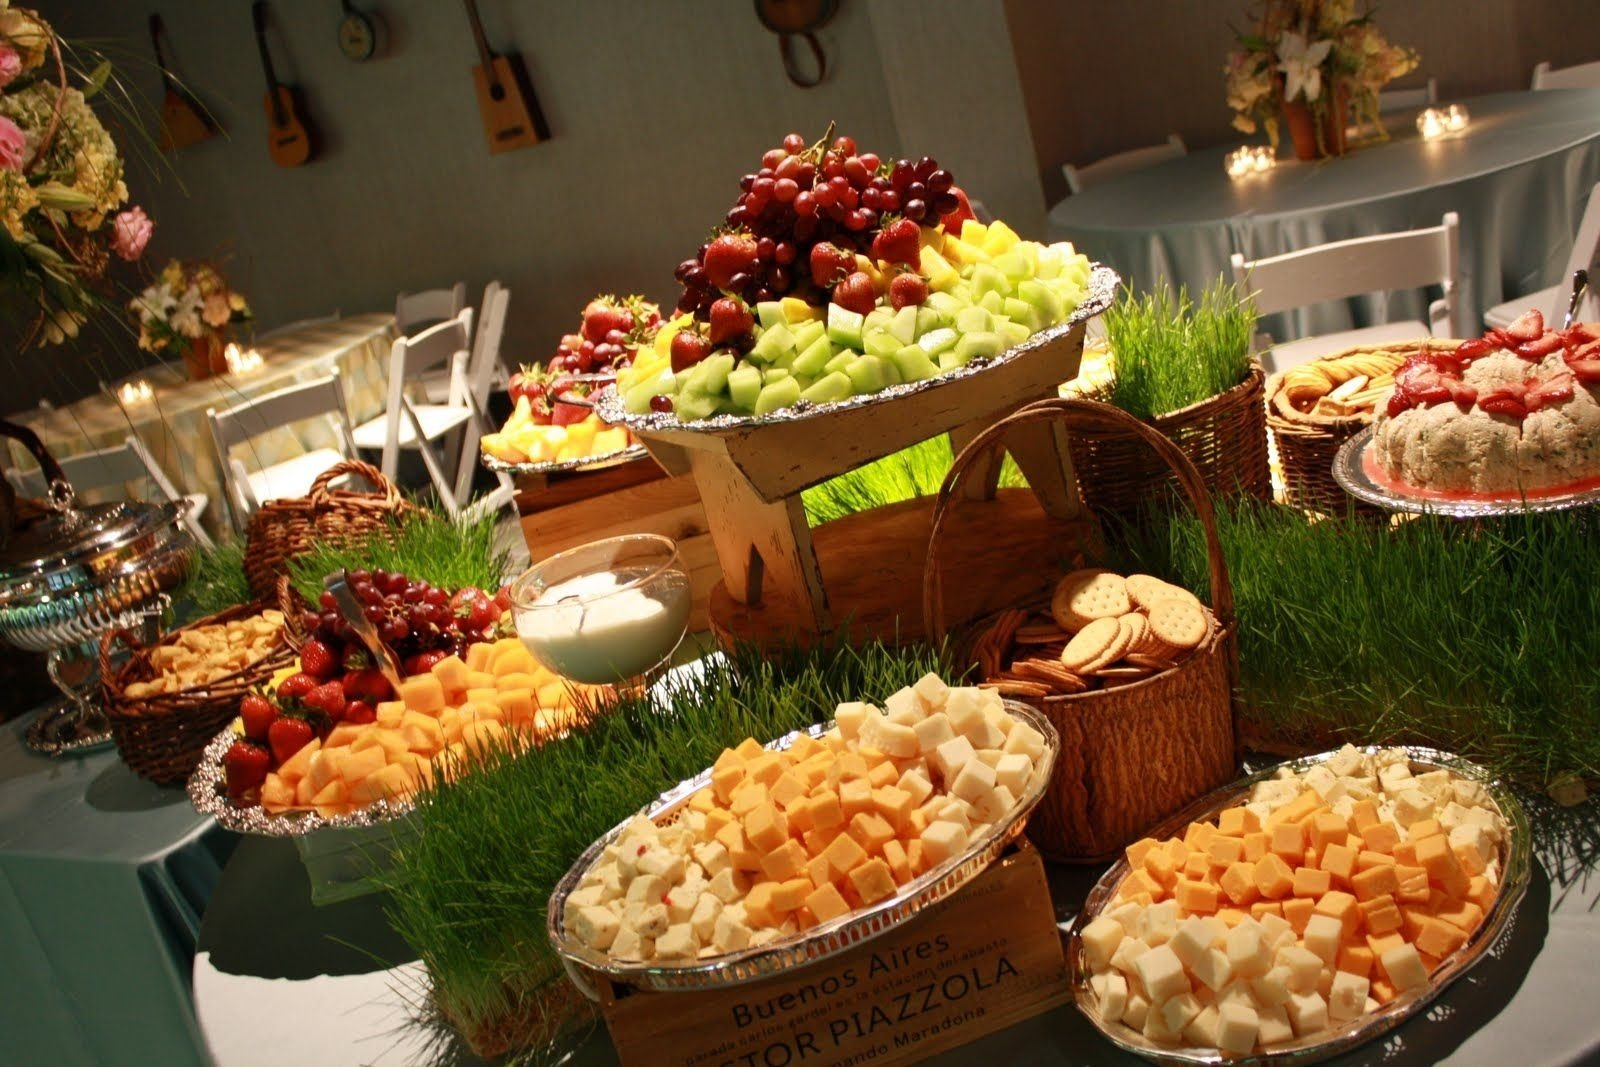 10 Fantastic Heavy Hors D Oeuvres Menu Ideas wedding reception hors doeuvres ideas heavy hors doeuvres 1 2020